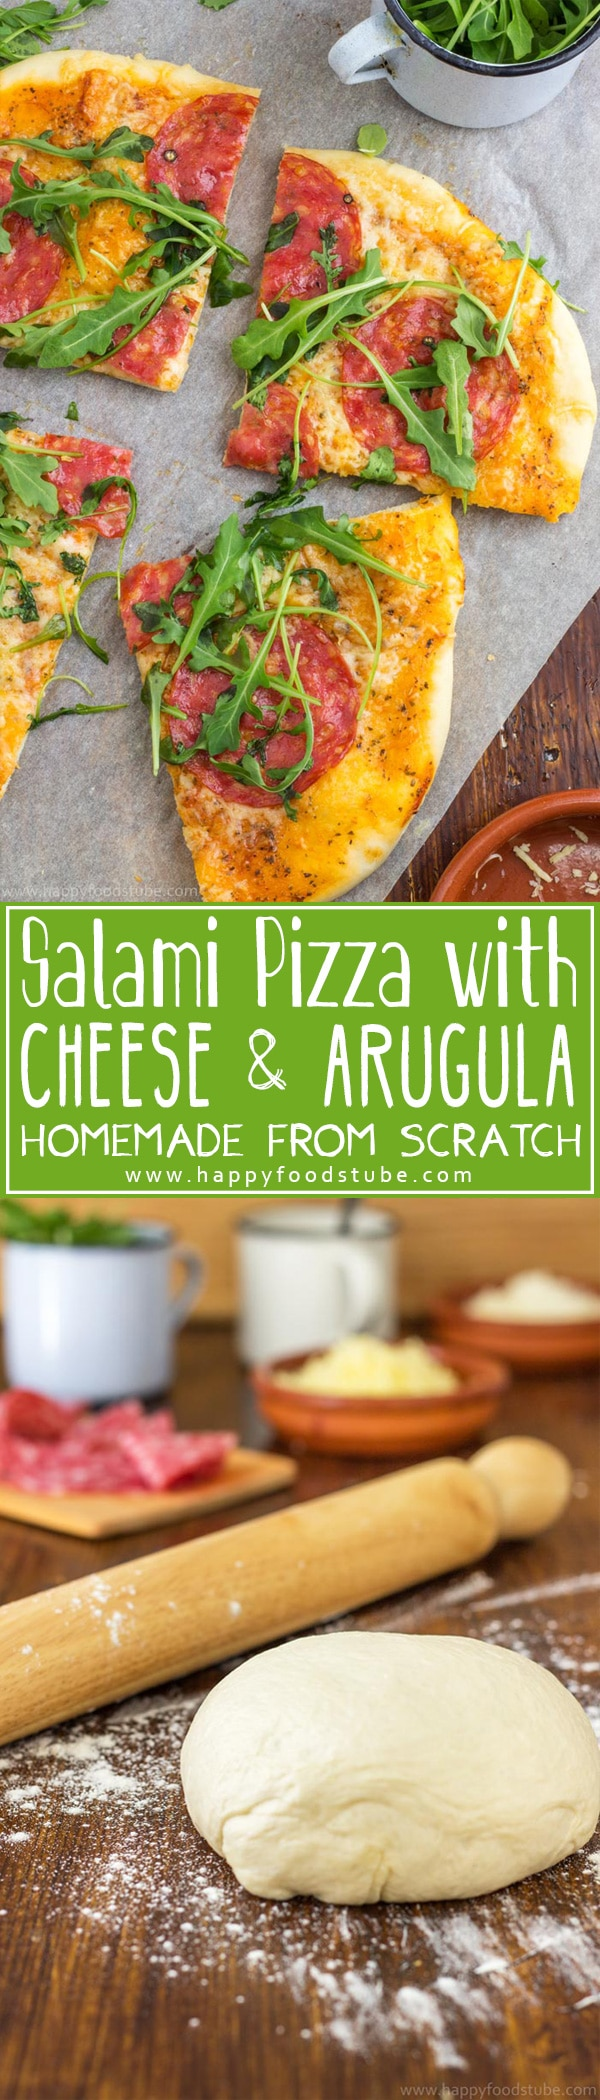 Pizza time! Salami pizza with cheese and arugula is waiting for you. Homemade pizza dough, pizza sauce from scratch and simple yet mouth-watering toppings. Only 5 ingredients